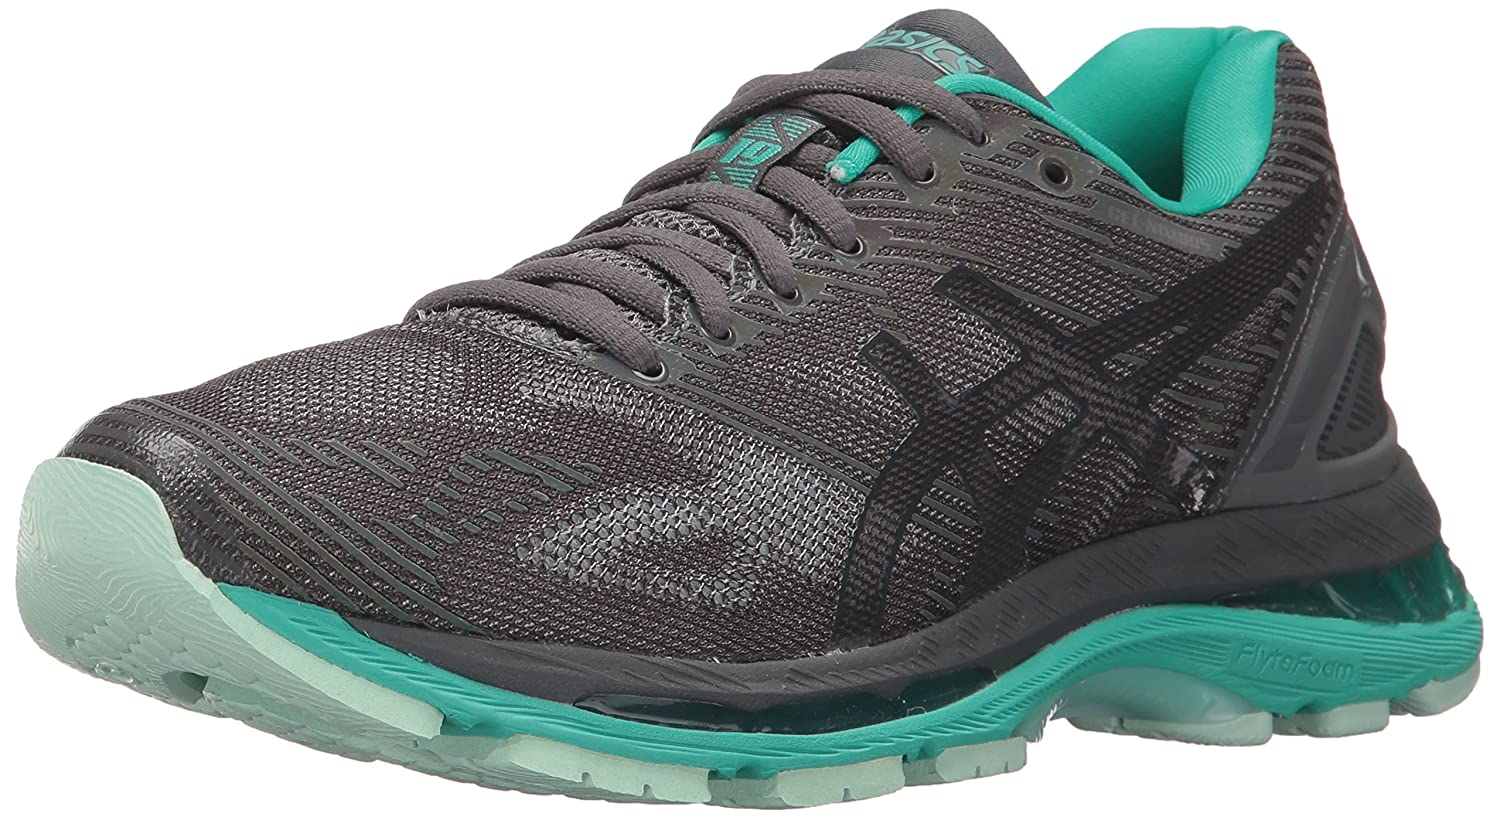 ASICS Women's Gel-Nimbus 19 Lite-Show Running Shoe B01MTKYOOU 12 B(M) US|Dark Grey/Black/Reflective